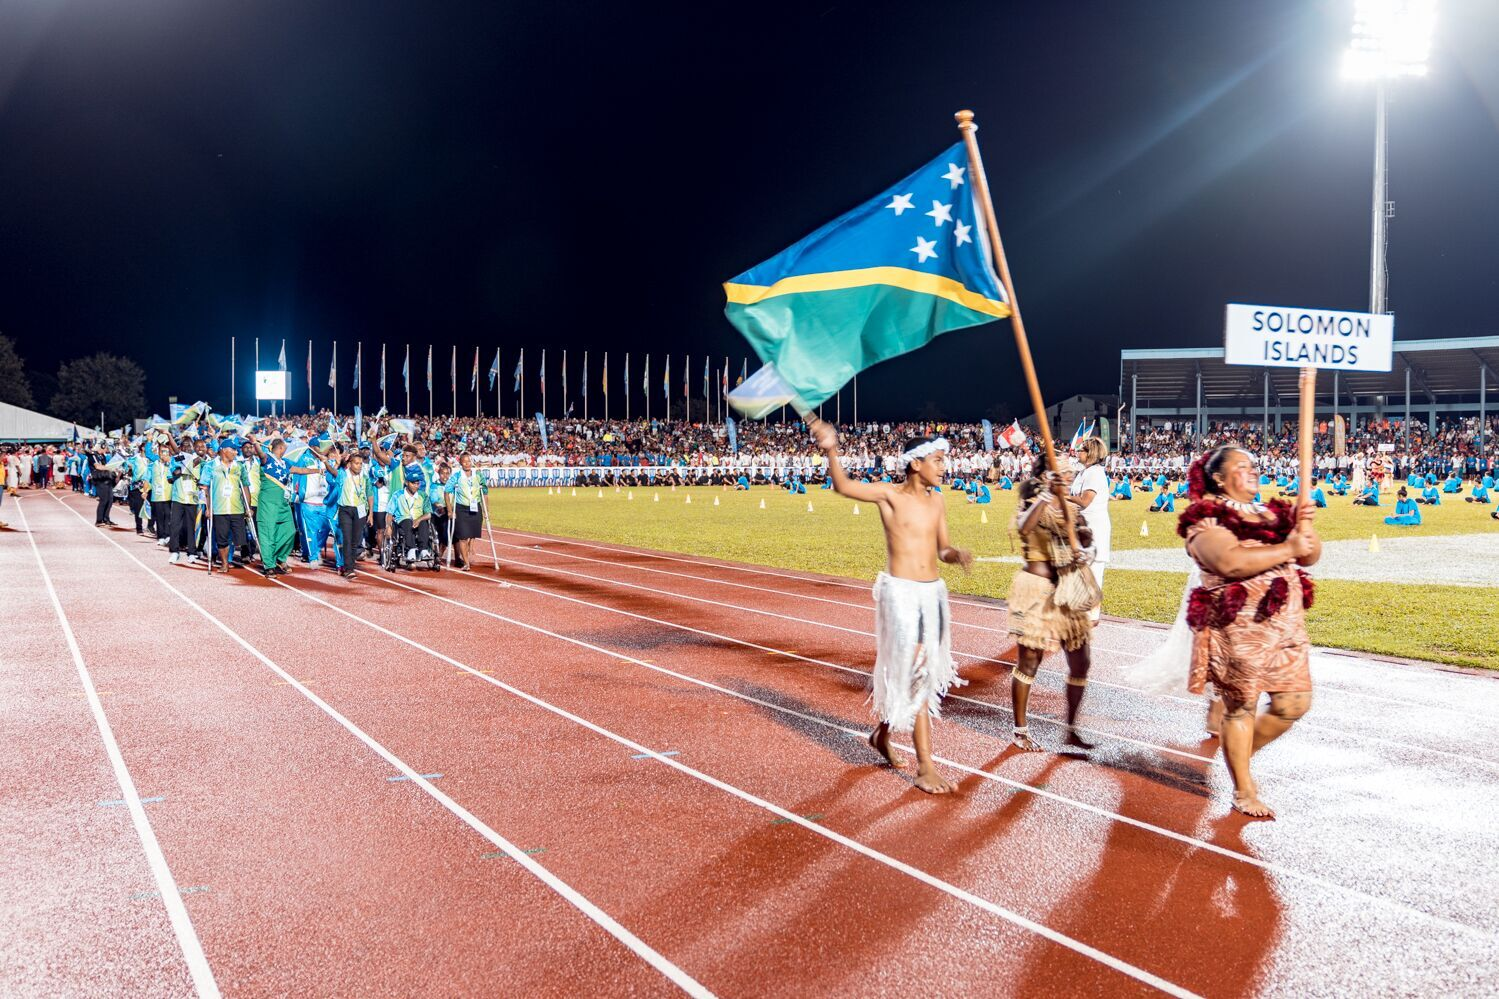 Solomon Islands will host the Pacific Games for the first time in 2023 ©Samoa 2019/Alvaro Hoyos Ramos